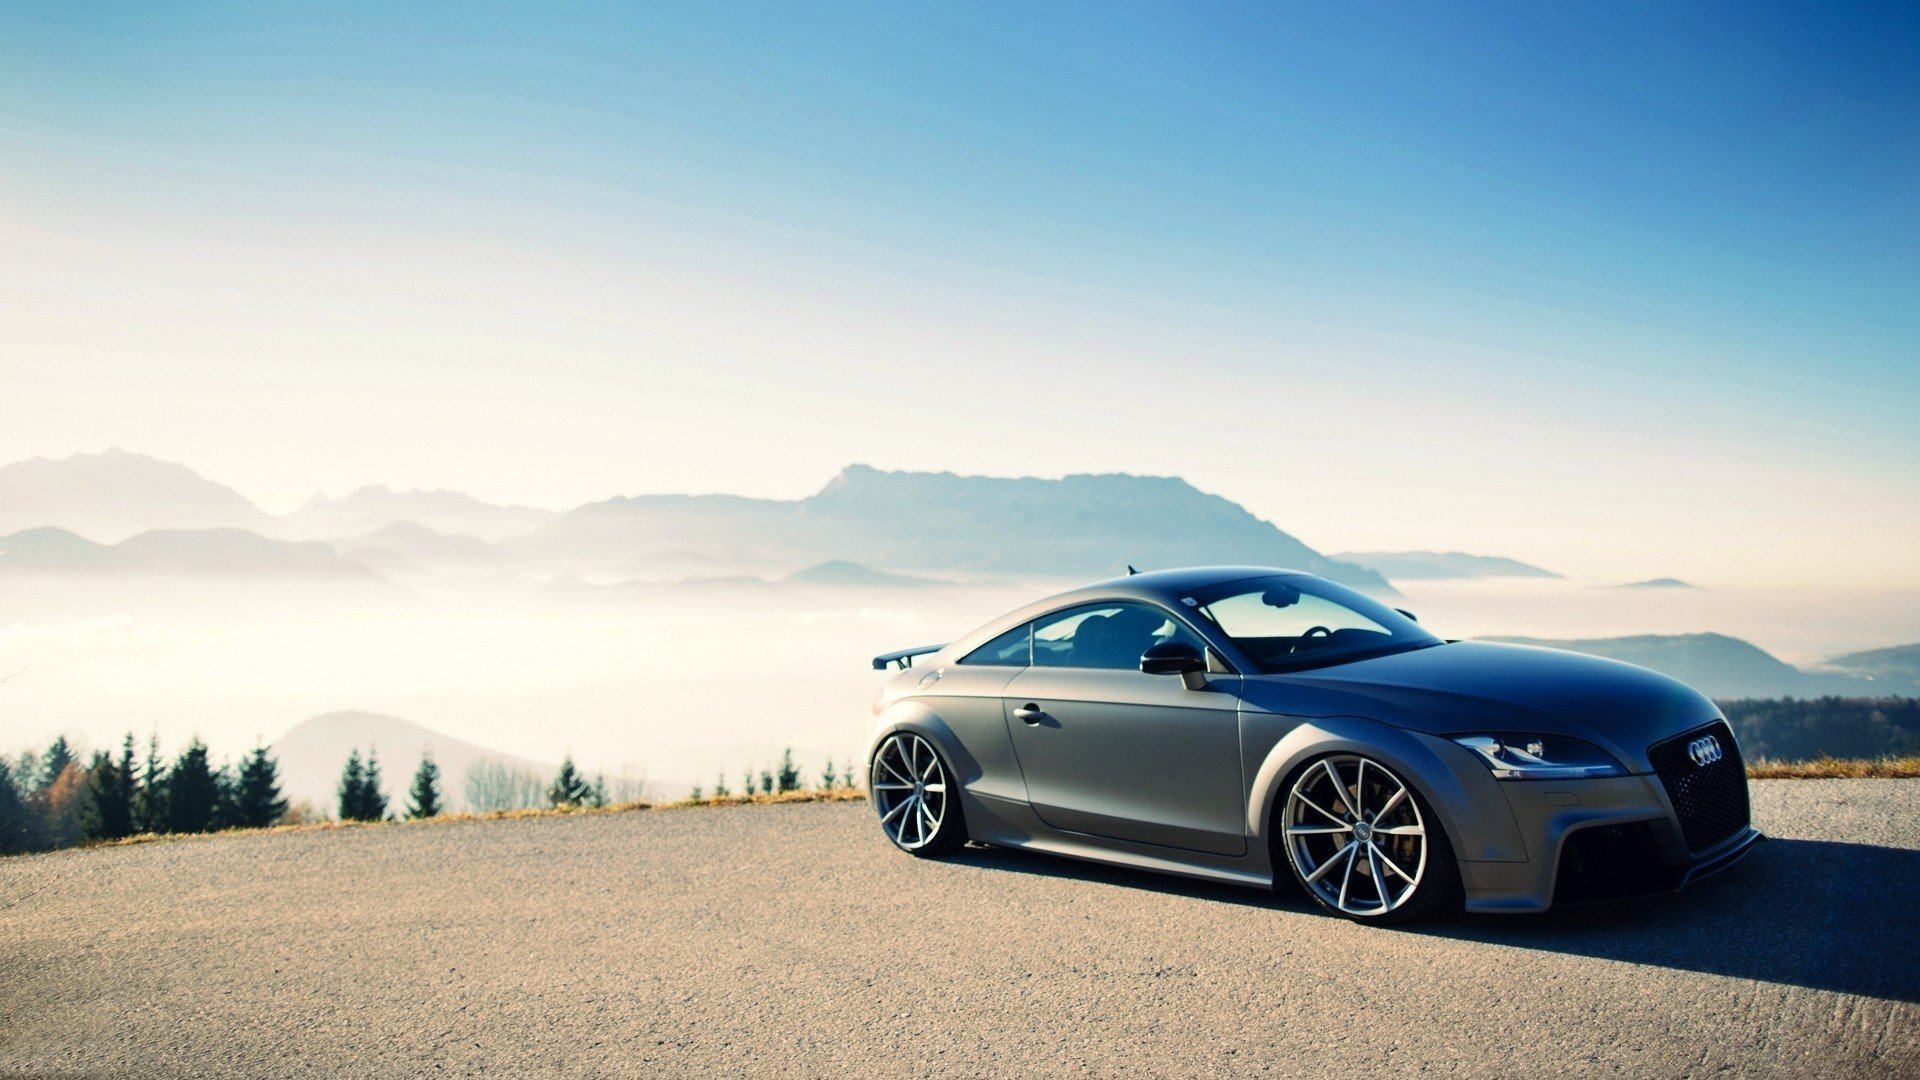 Audi TT Wallpaper | Full HD Pictures